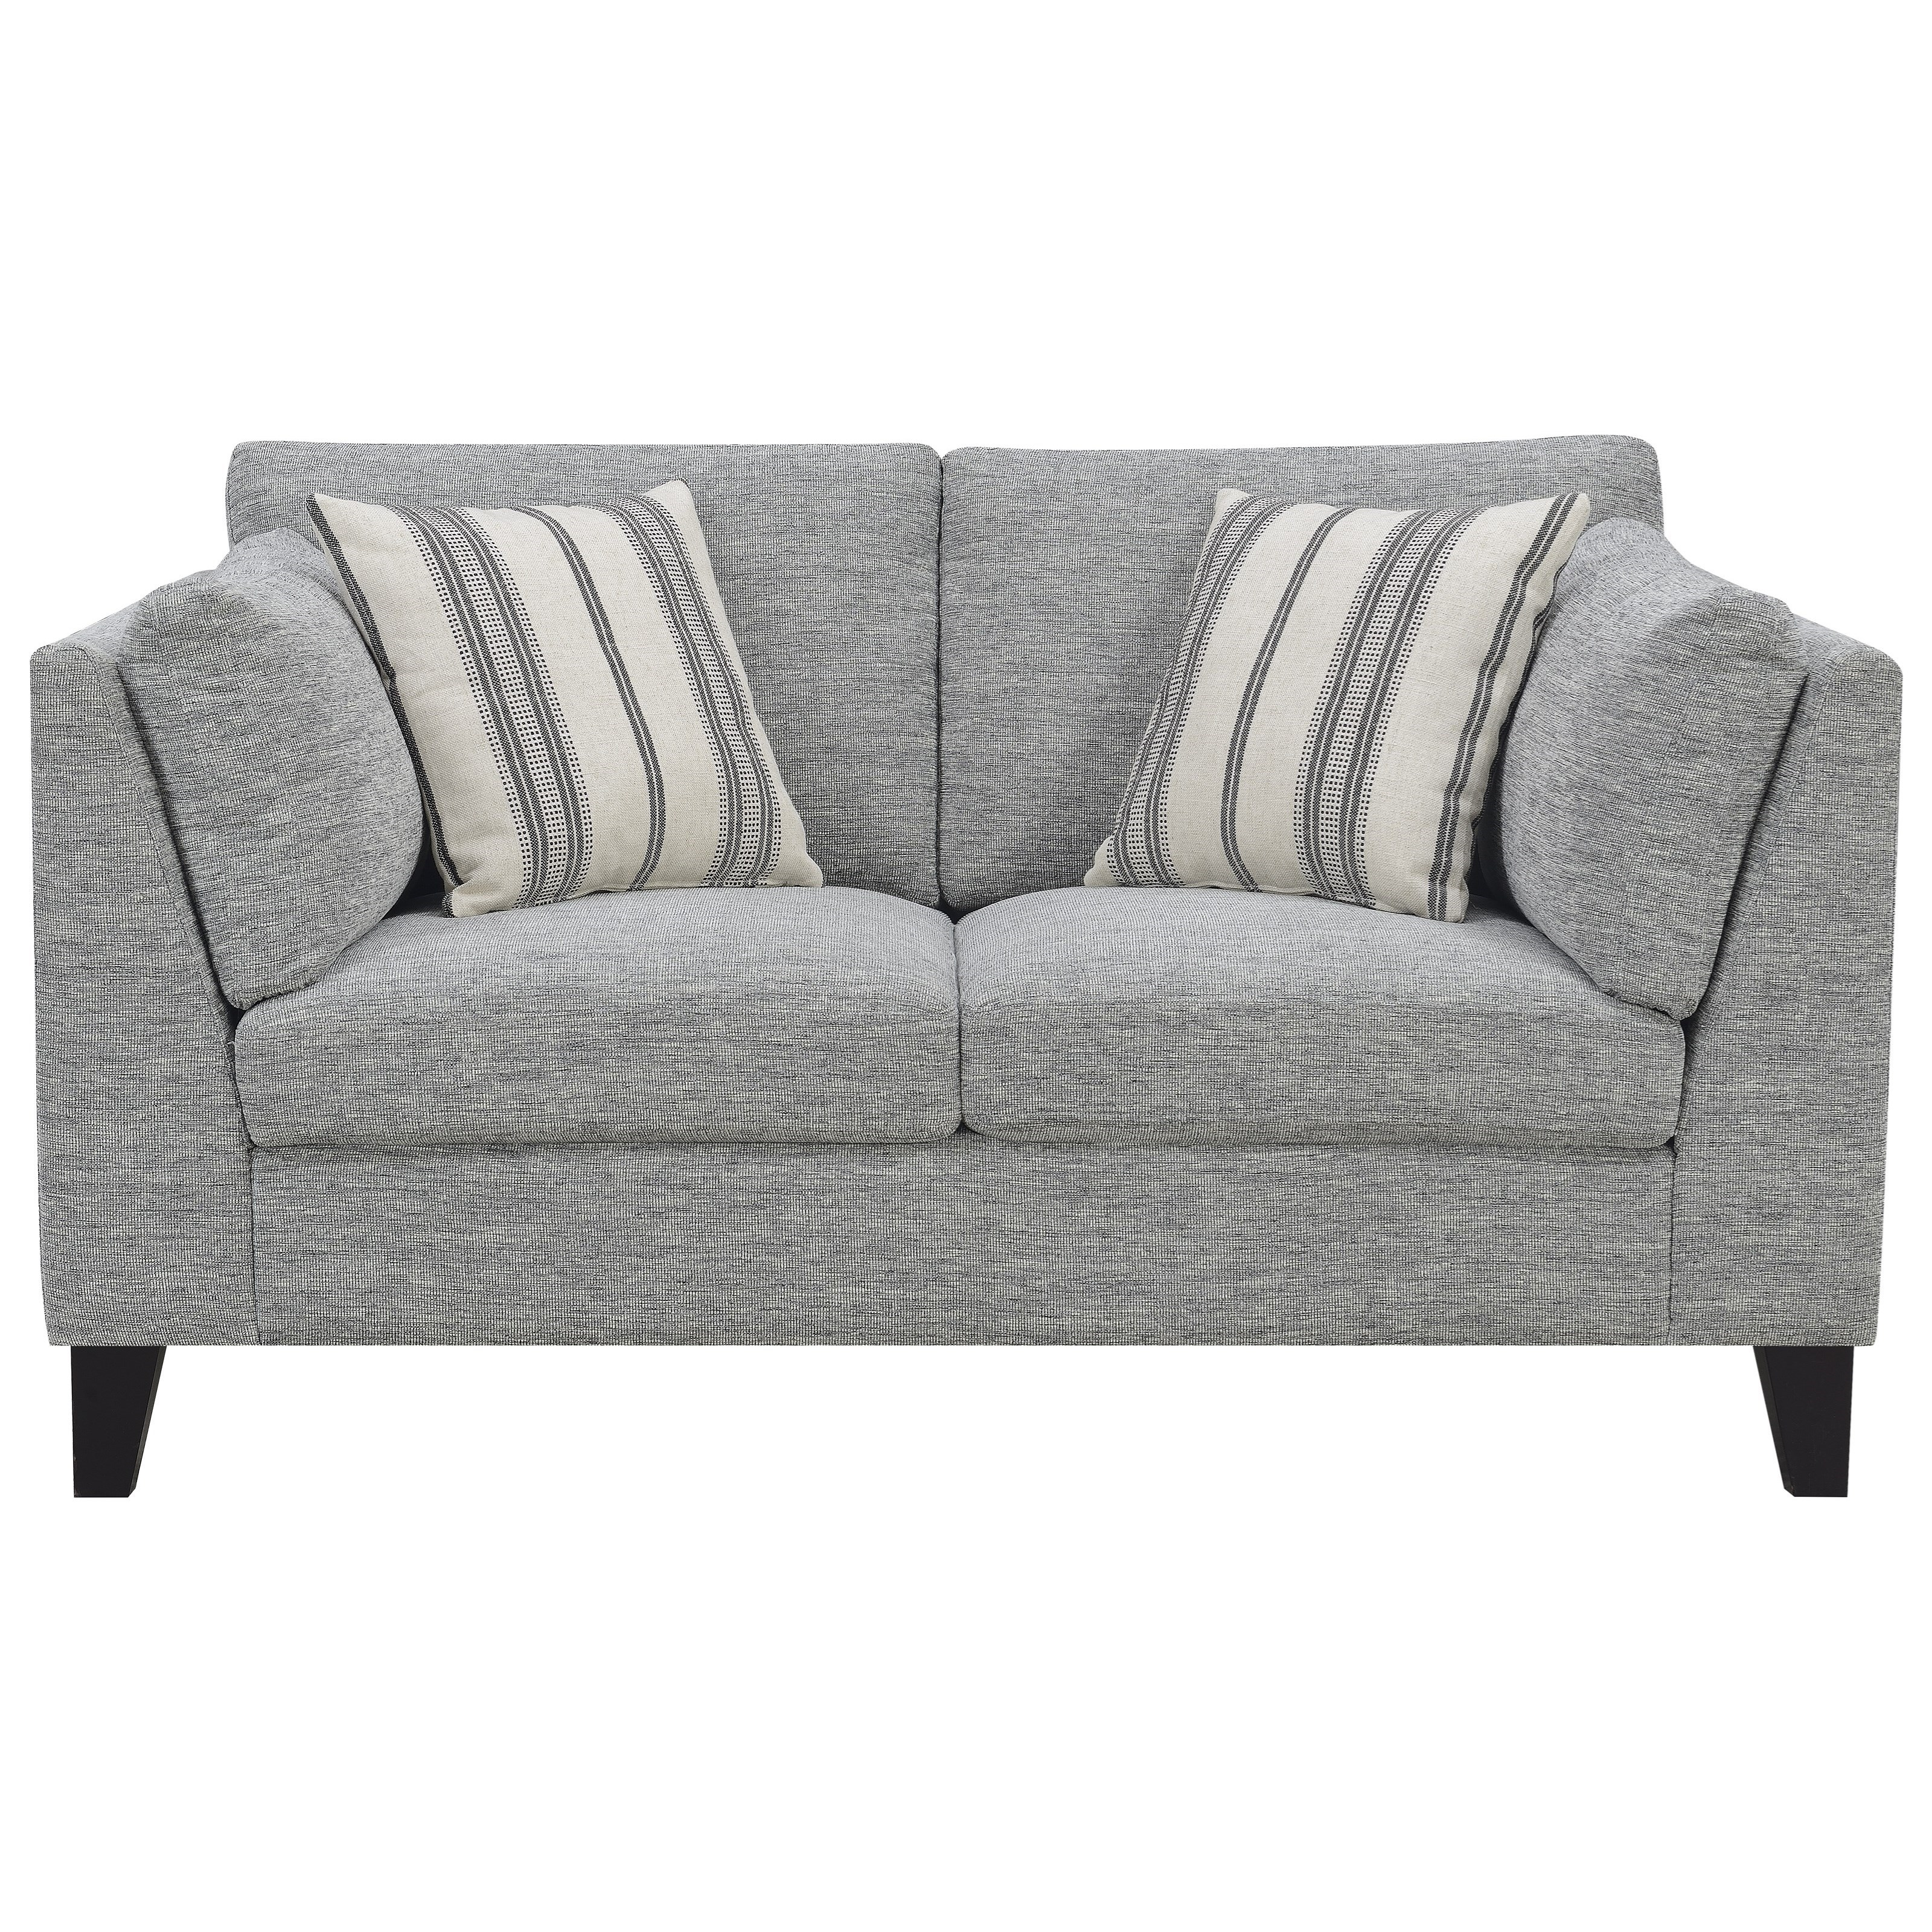 Elsbury Loveseat with 4 Accent Pillows by Emerald at Northeast Factory Direct